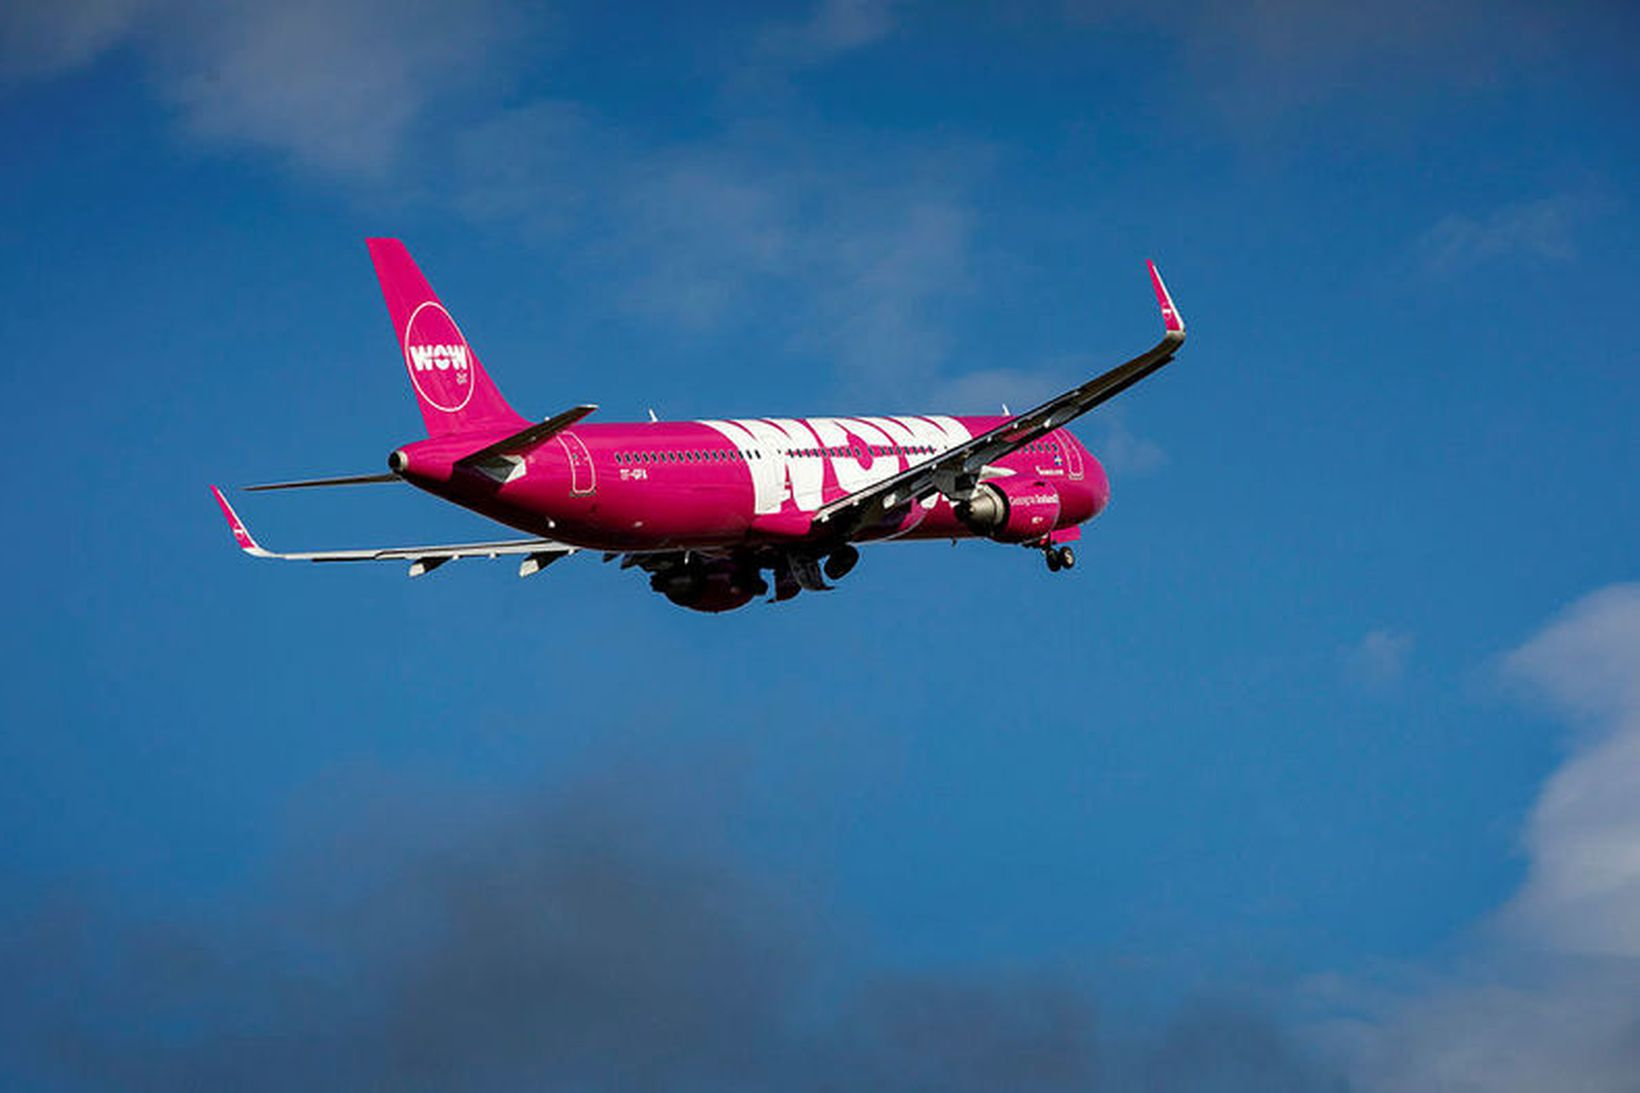 Michele Ballarin hyggst endurreisa WOW air.